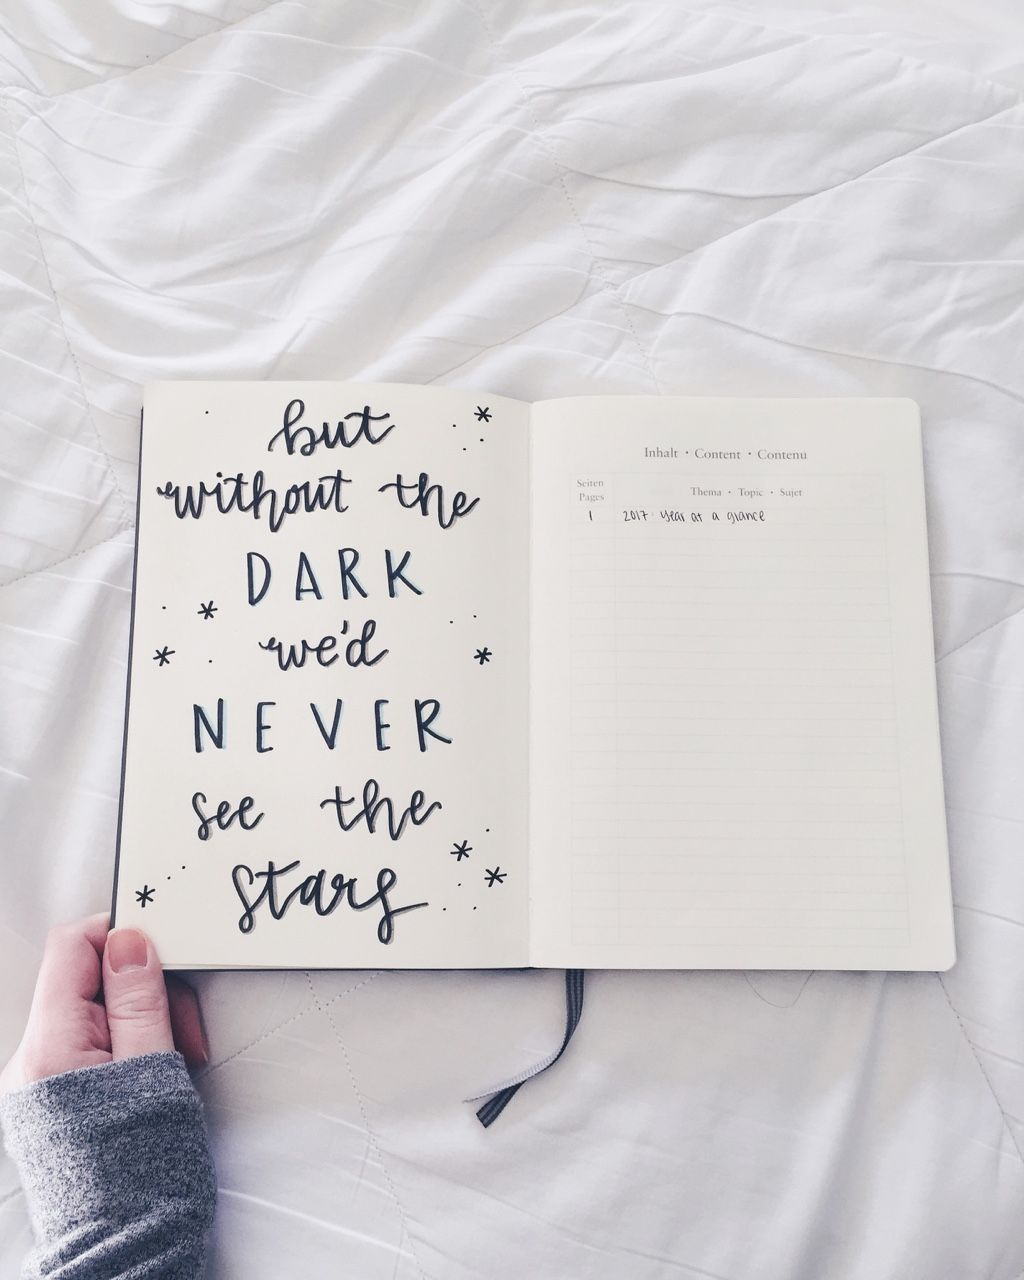 Aesthetic Bullet Journal Quotes : aesthetic, bullet, journal, quotes, Tumblr, Bullet, Journal, Quotes,, Lettering, Quotes